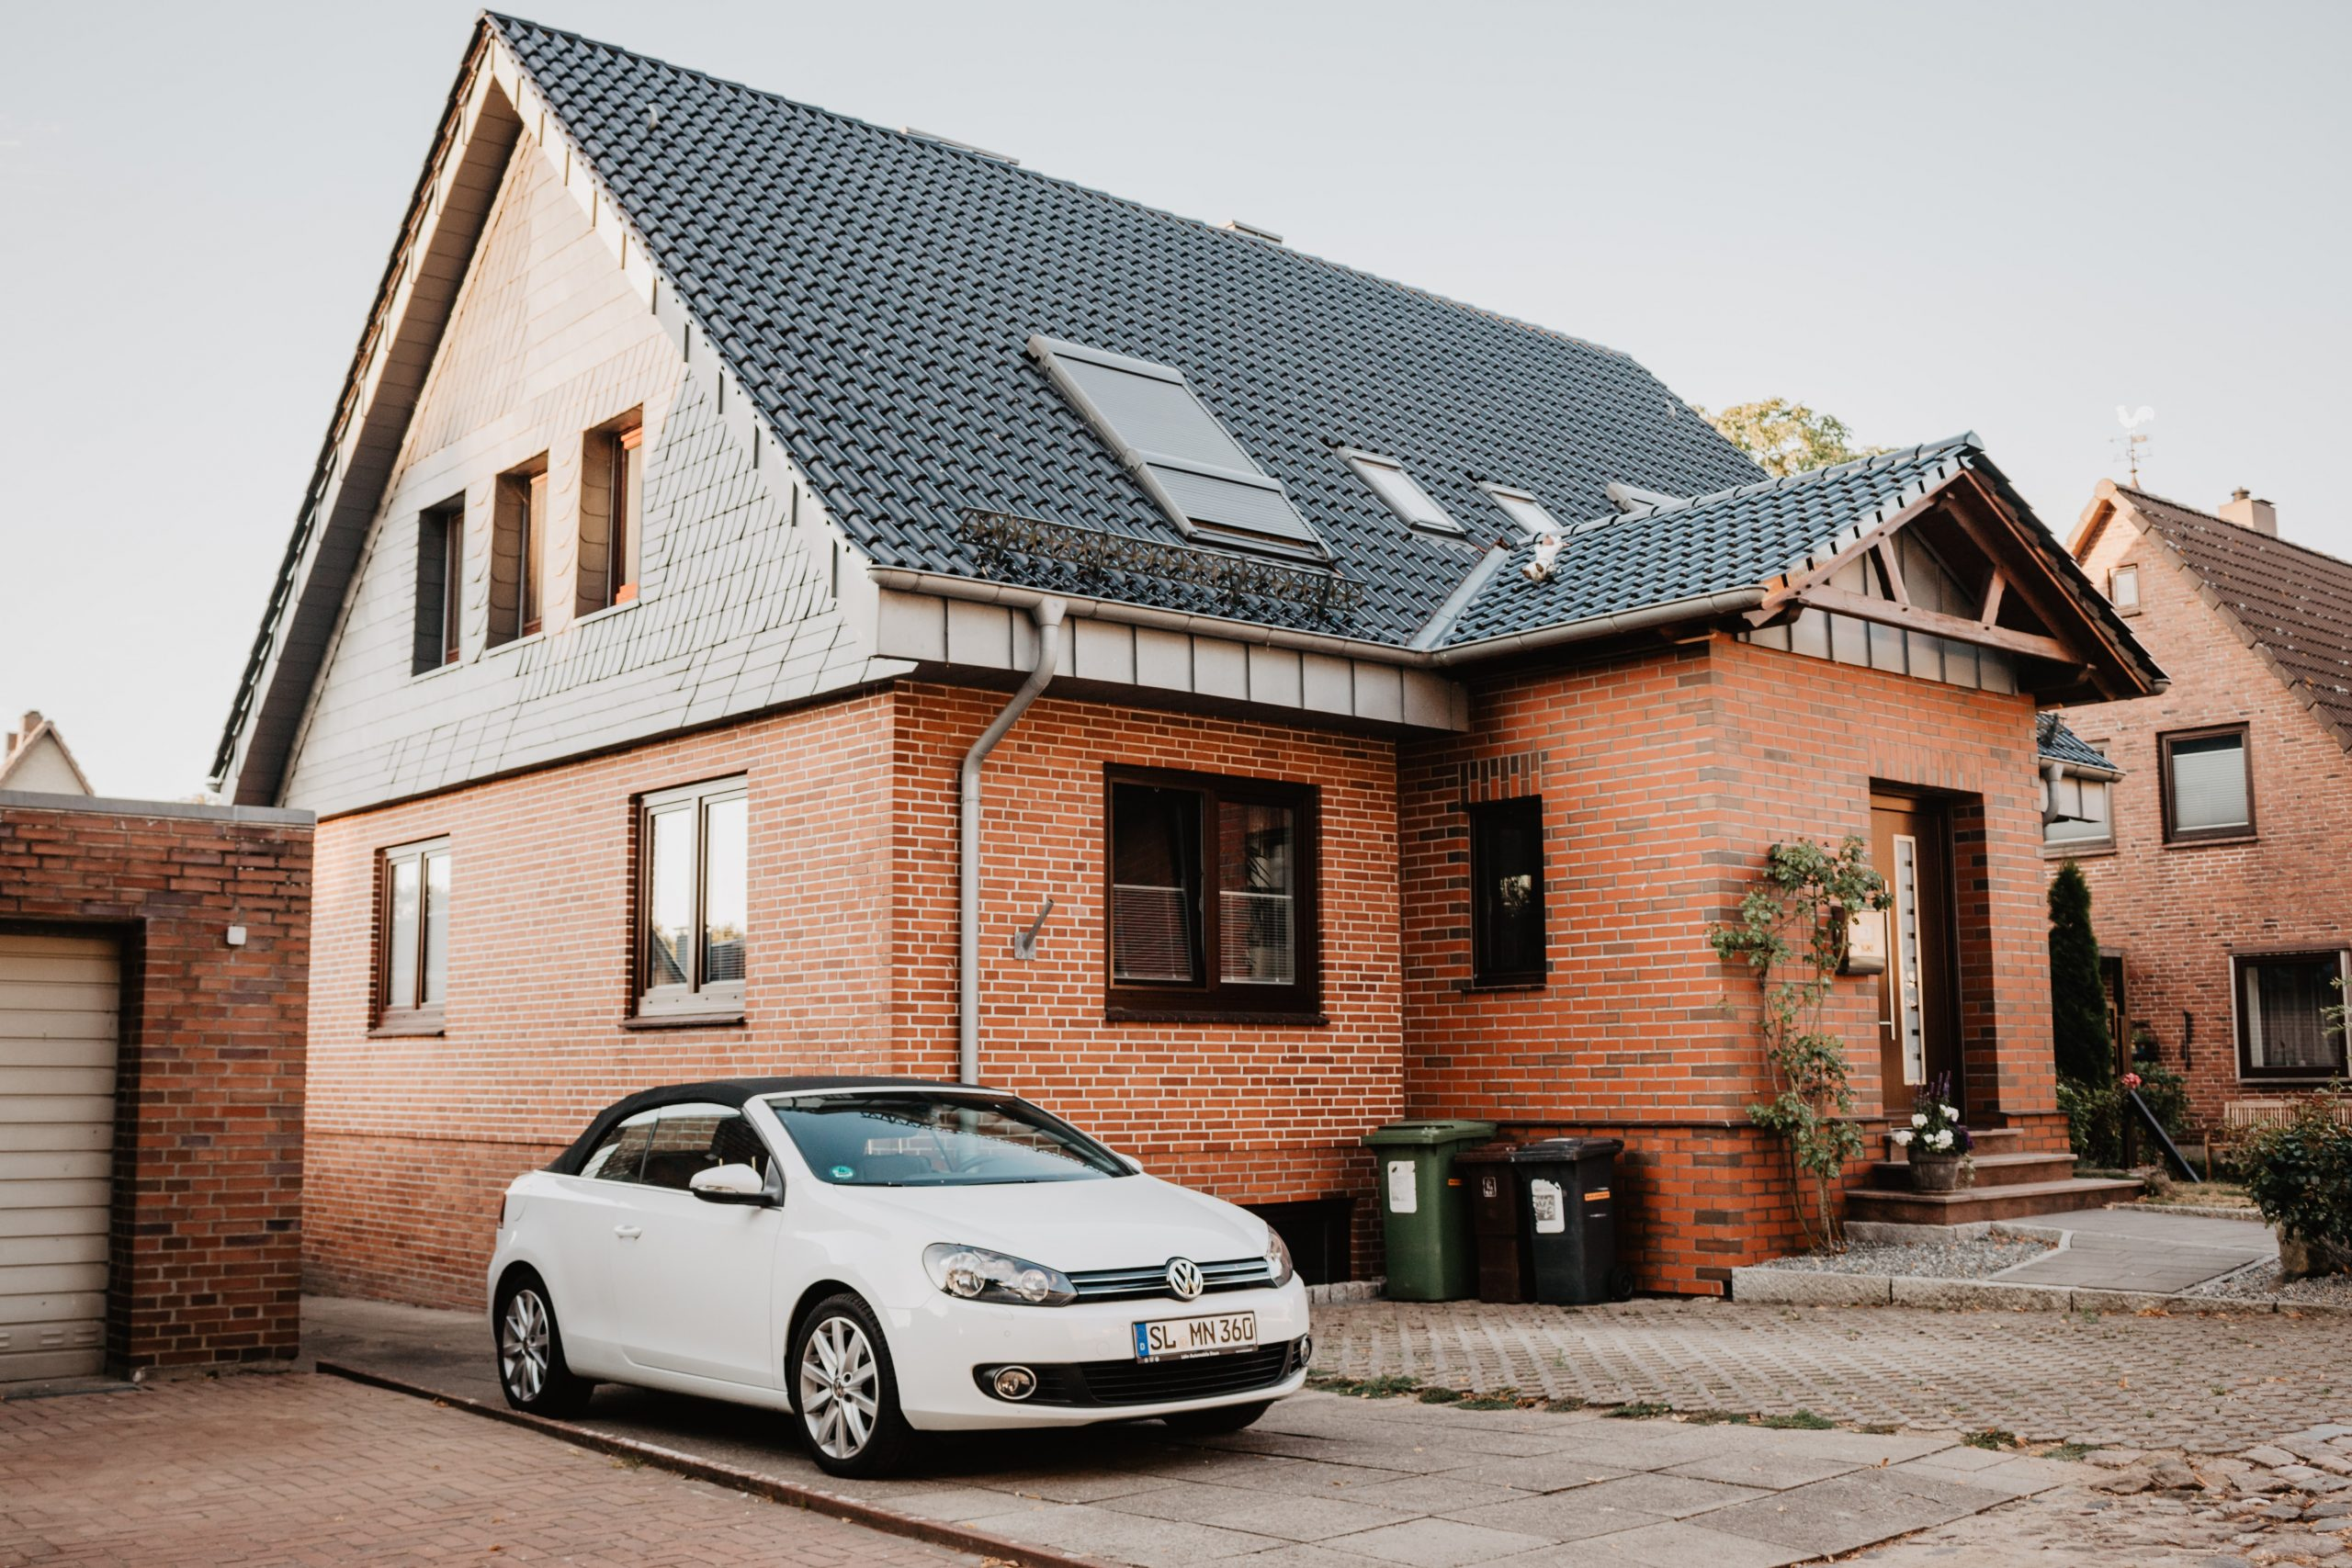 How to Cut Your Home and Car Payments… Without Sacrificing Your Happiness